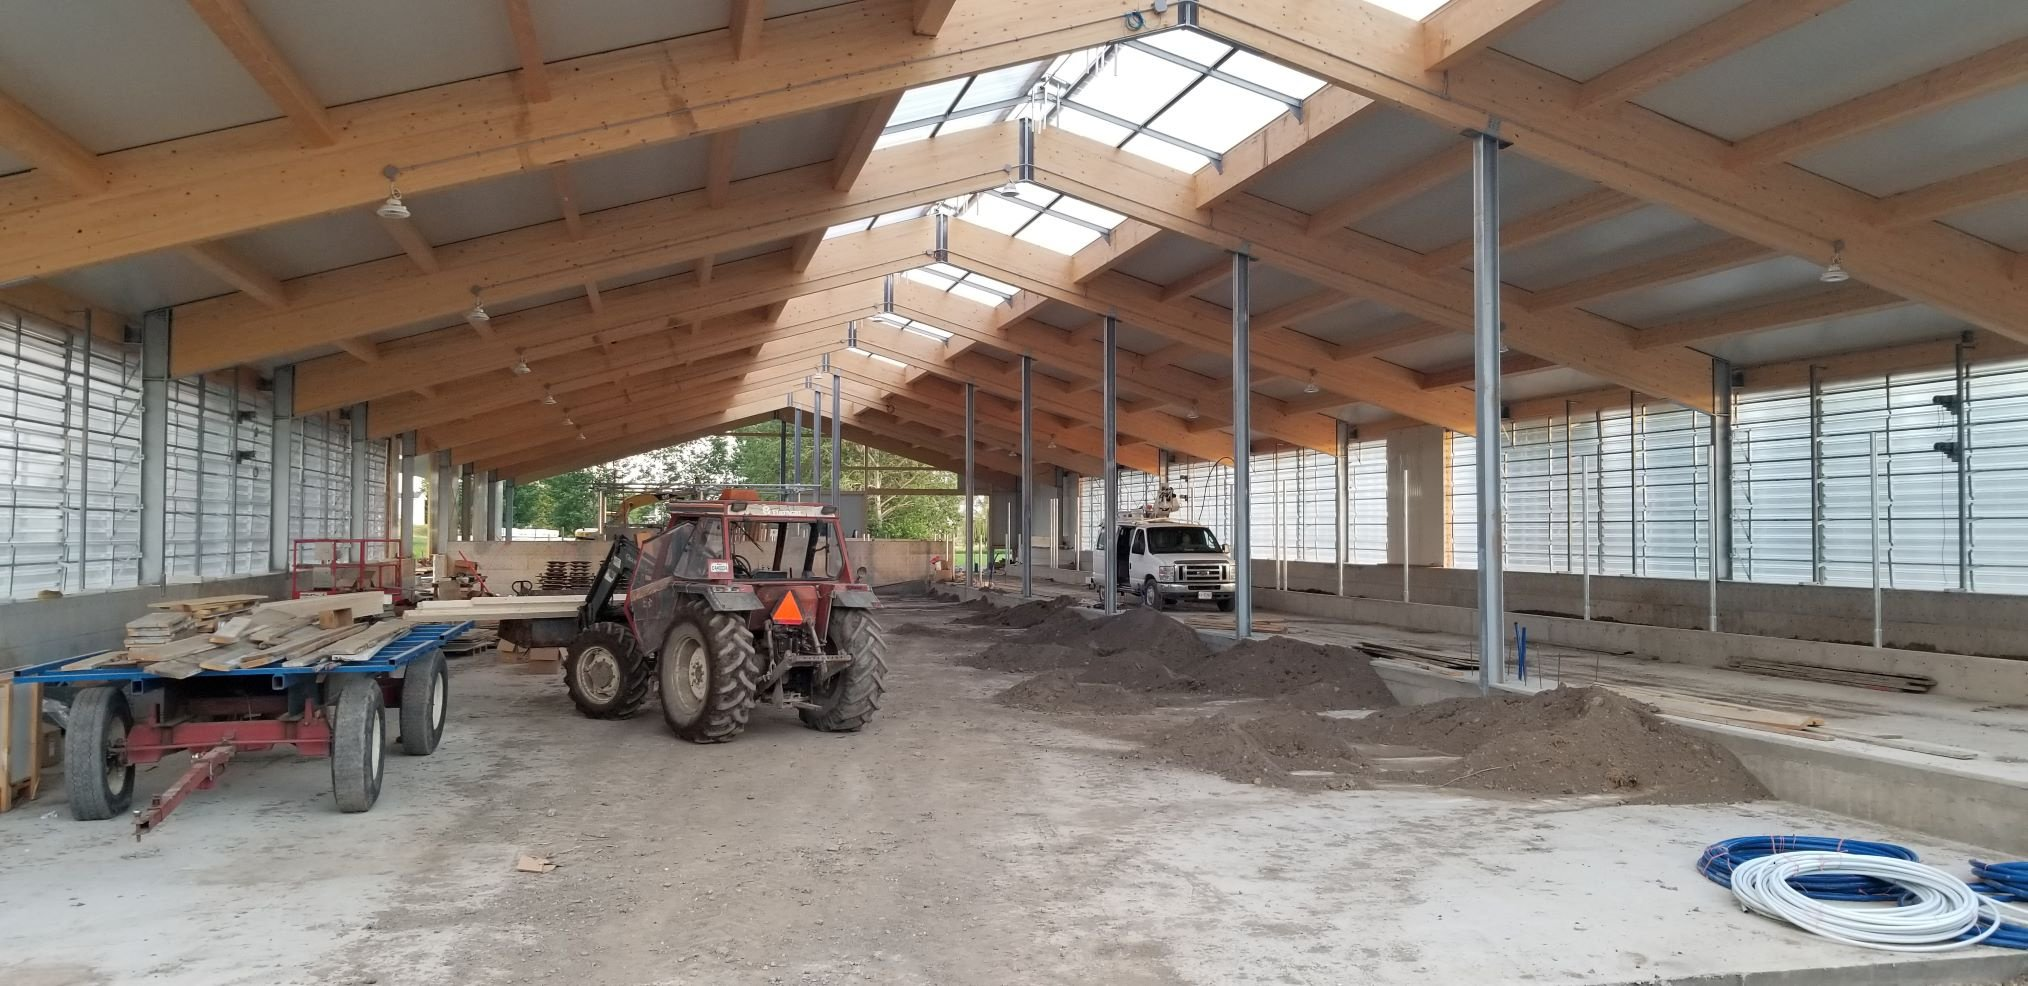 2019 Clarenceville, Quebec - Dairy barn